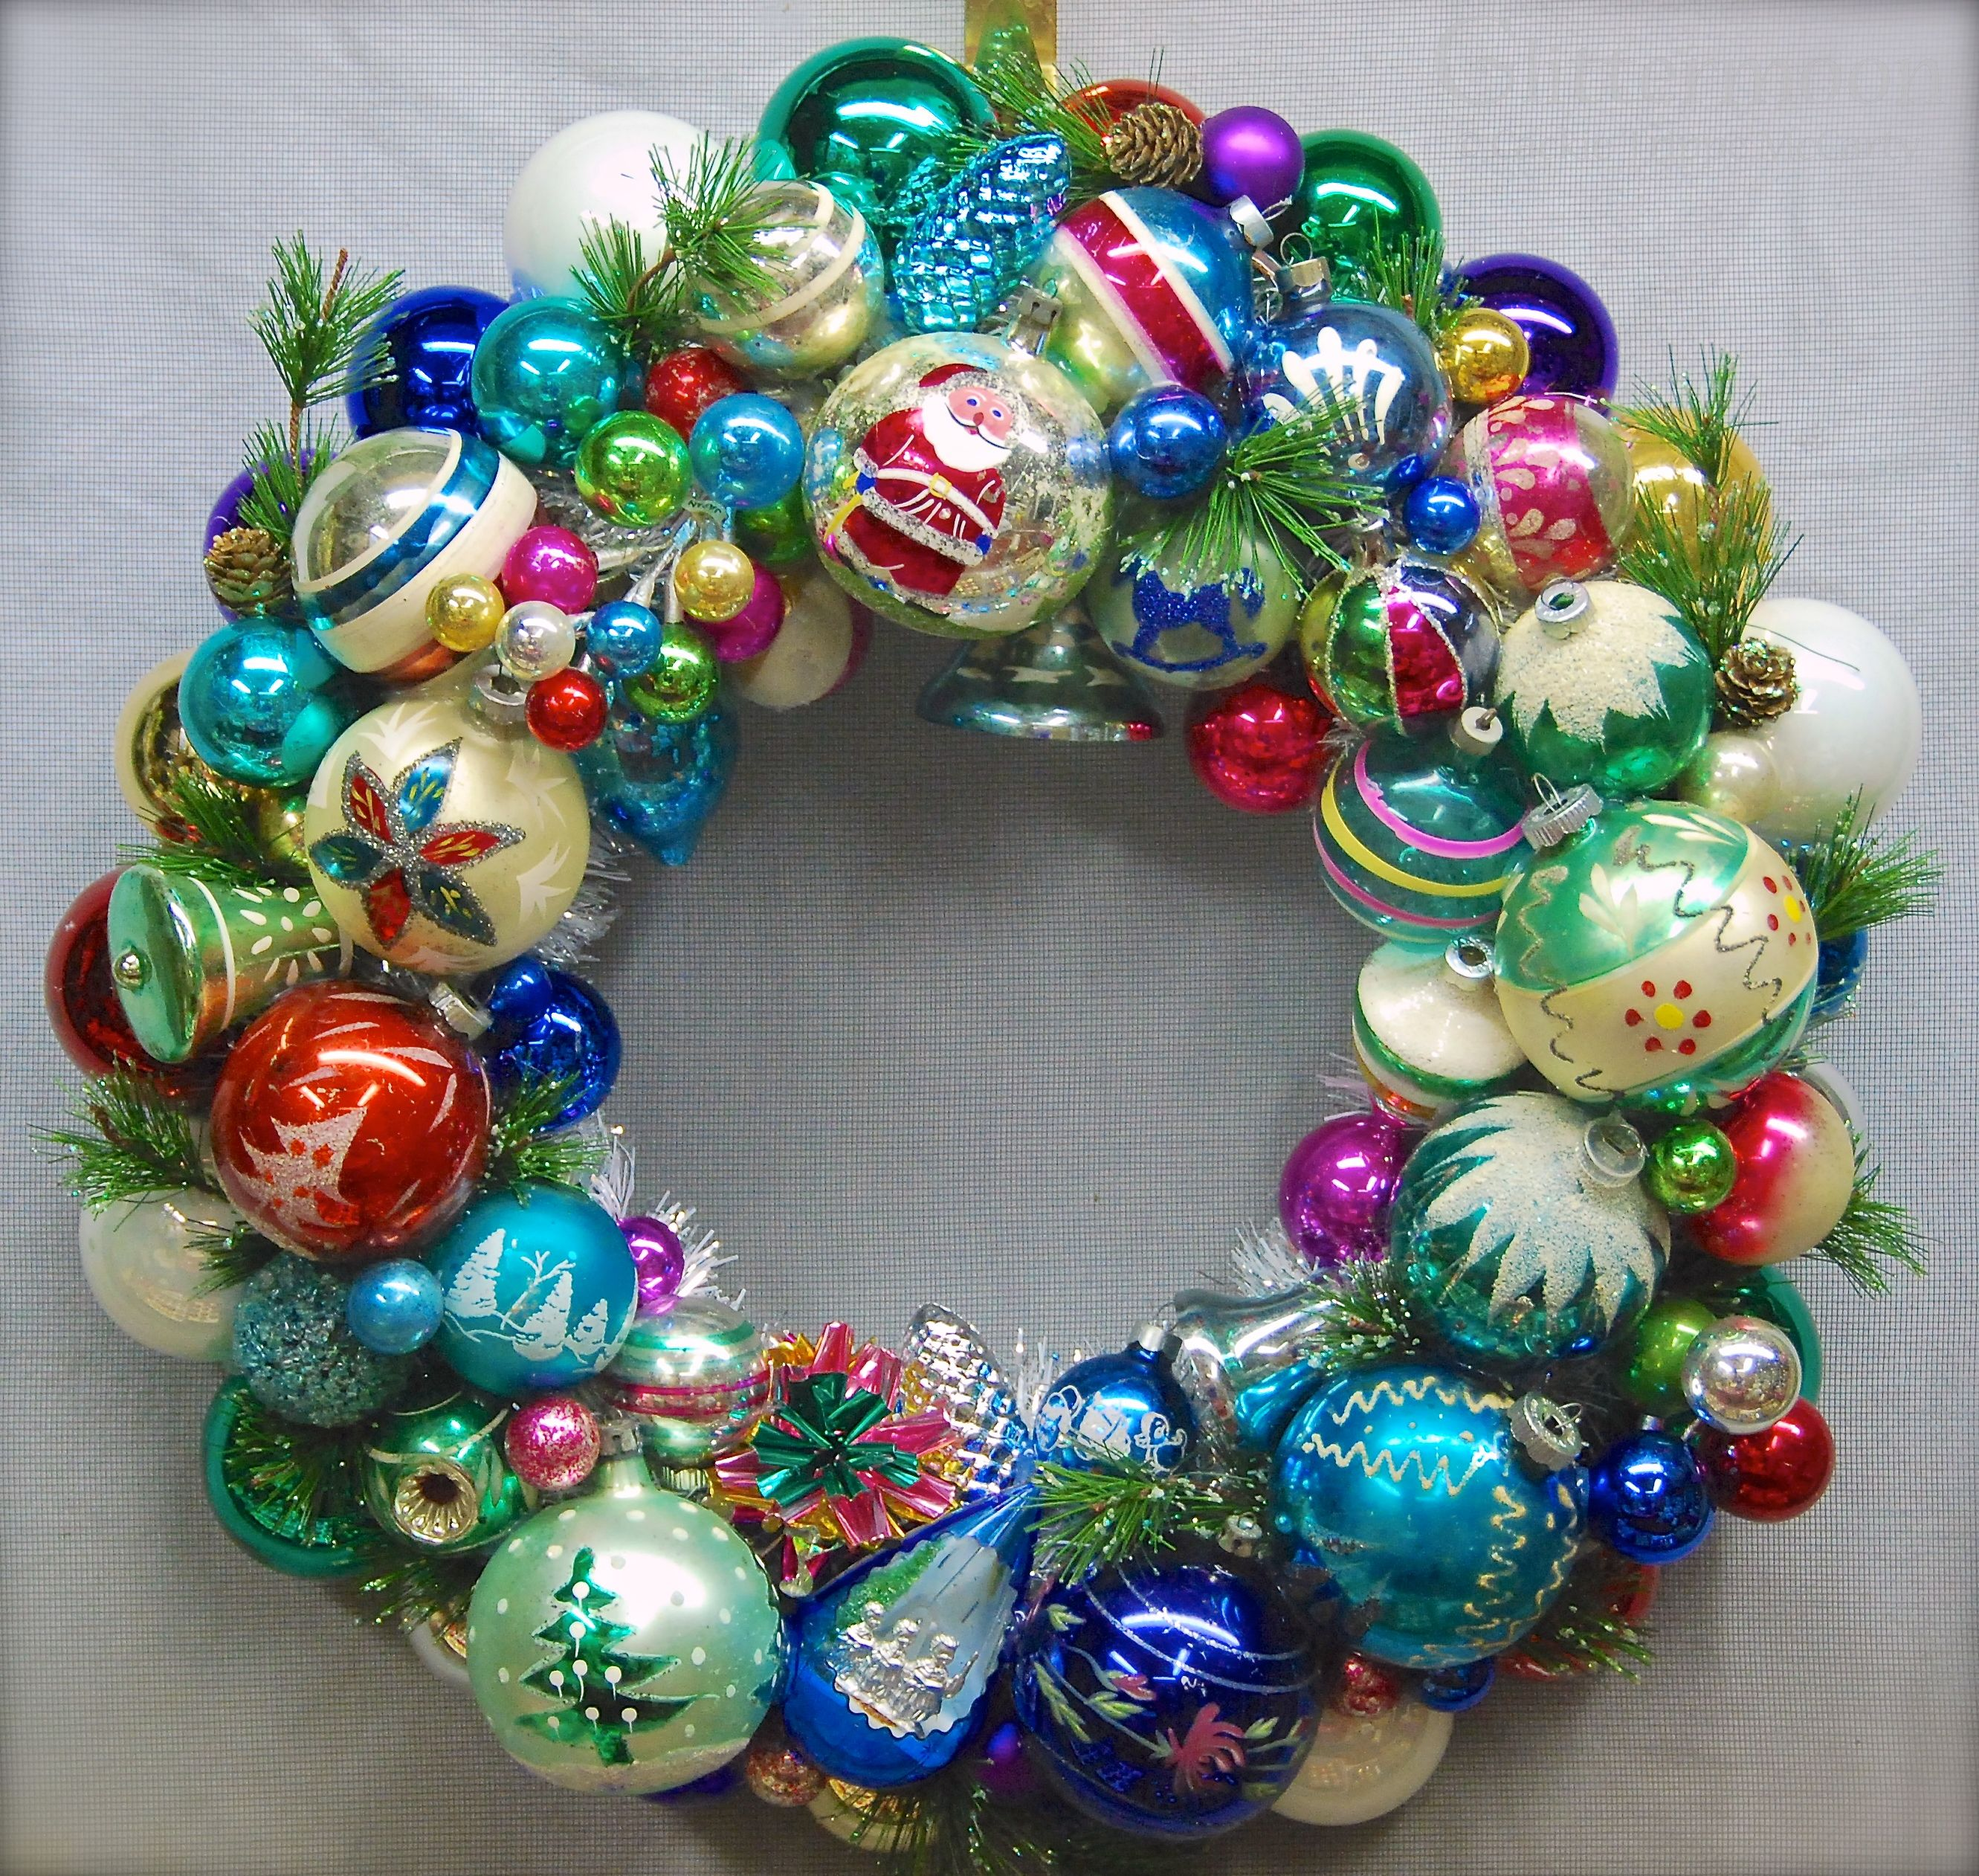 old-fashioned-christmas-wreath-c2a9glittermoon-productions-llc.jpg ...